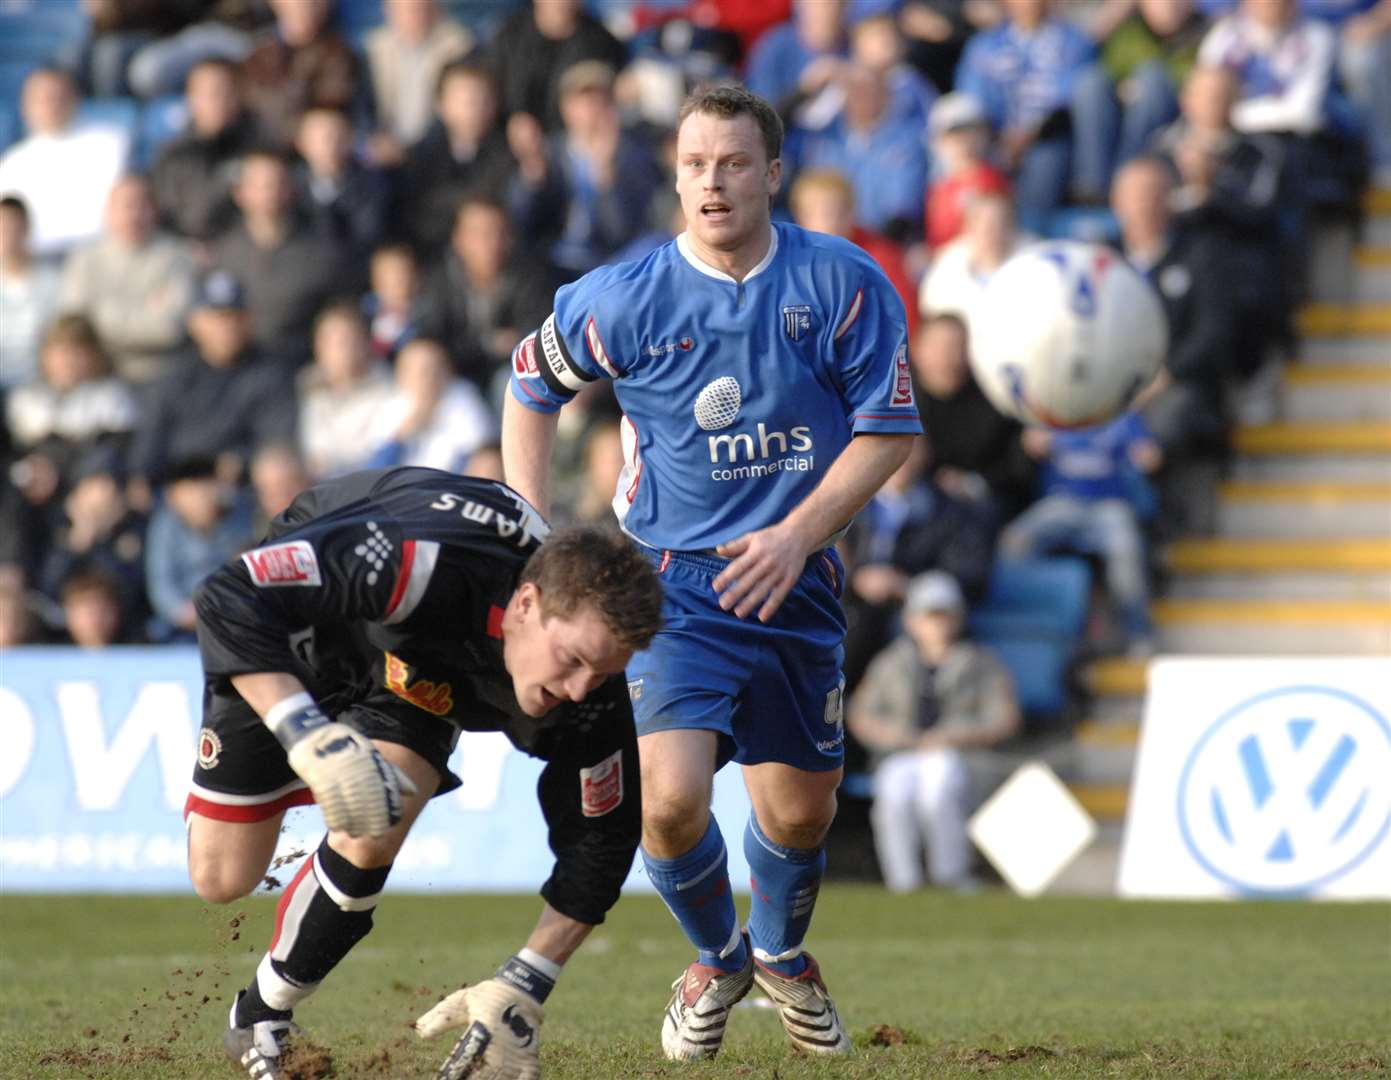 Michael Flynn in action for Gillingham as a player in 2007